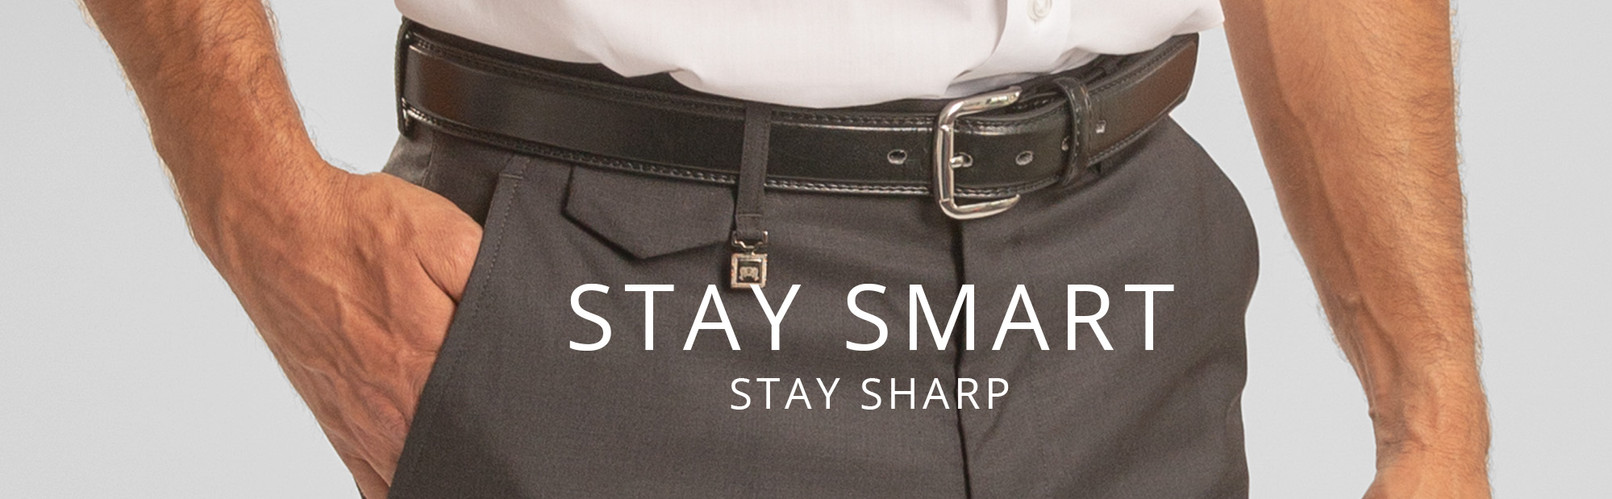 Stay Smart, Stay Sharp